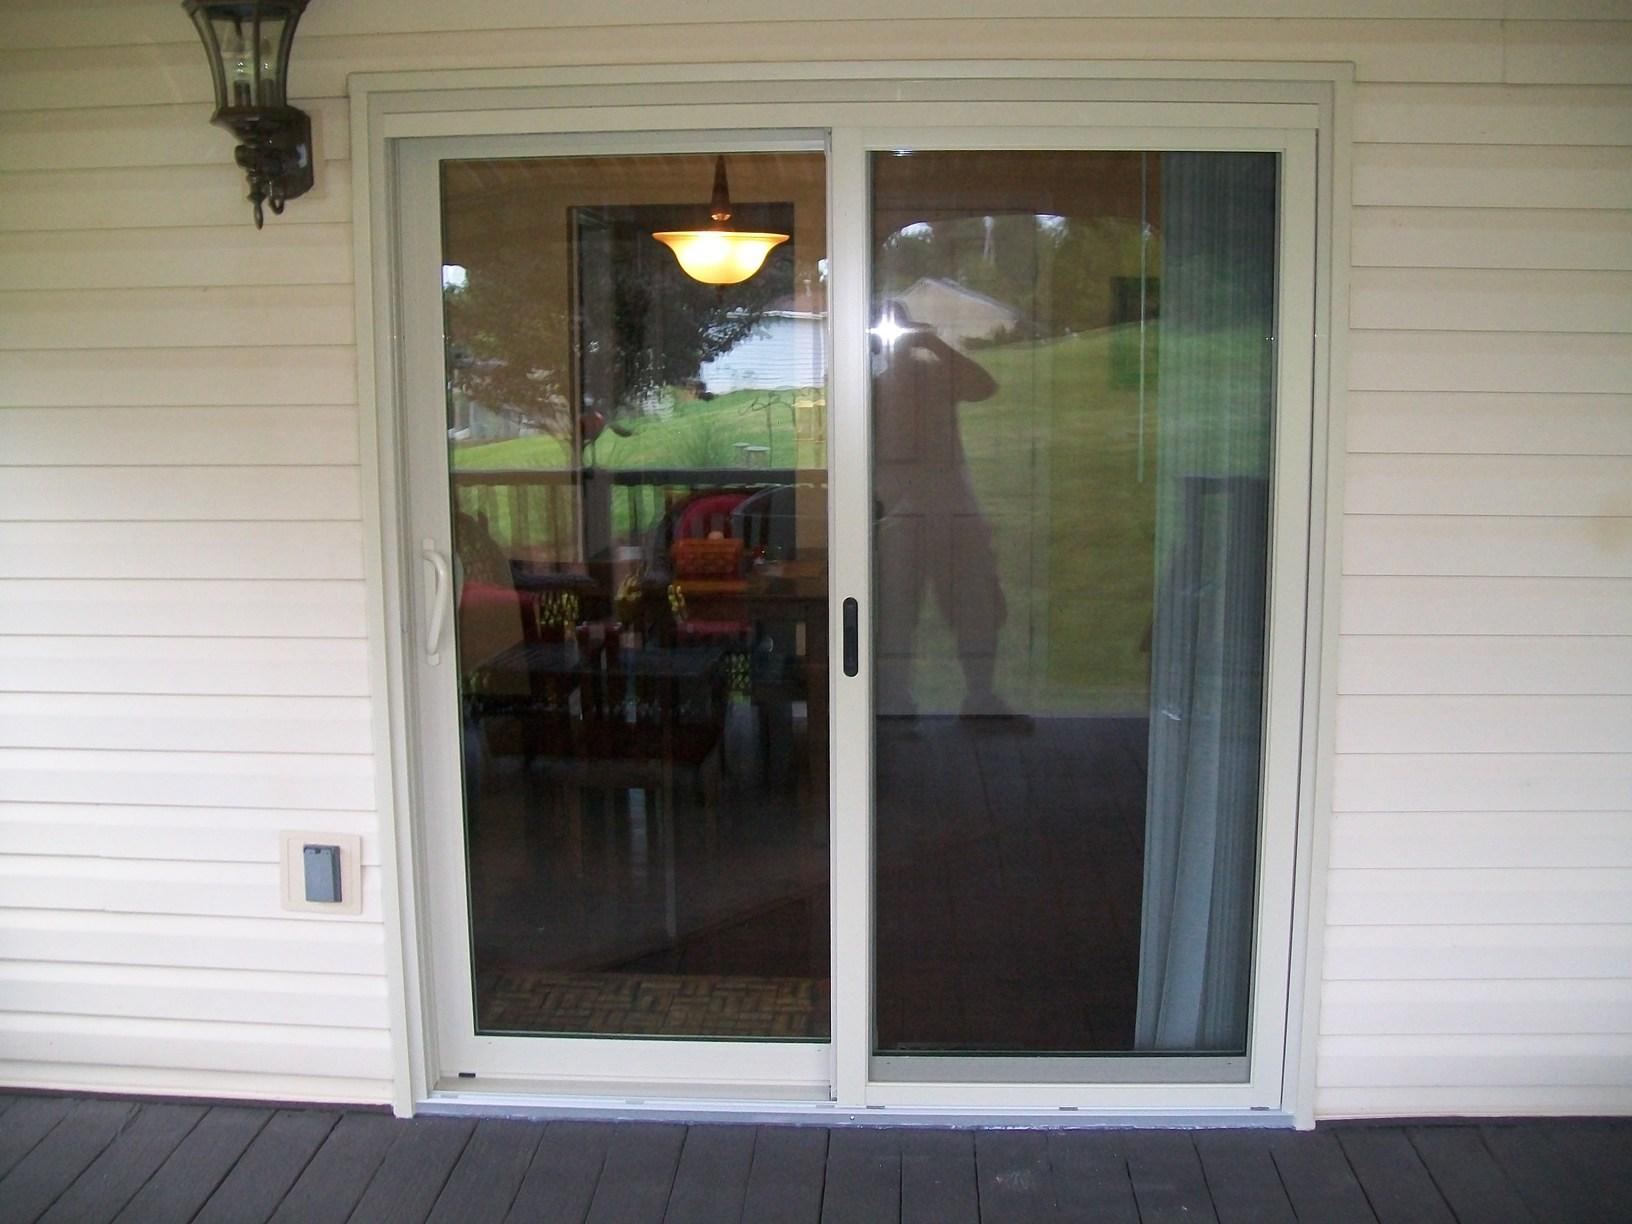 New Energy Effecient Sliding Glass Door Installed in Trafford, PA - After Photo